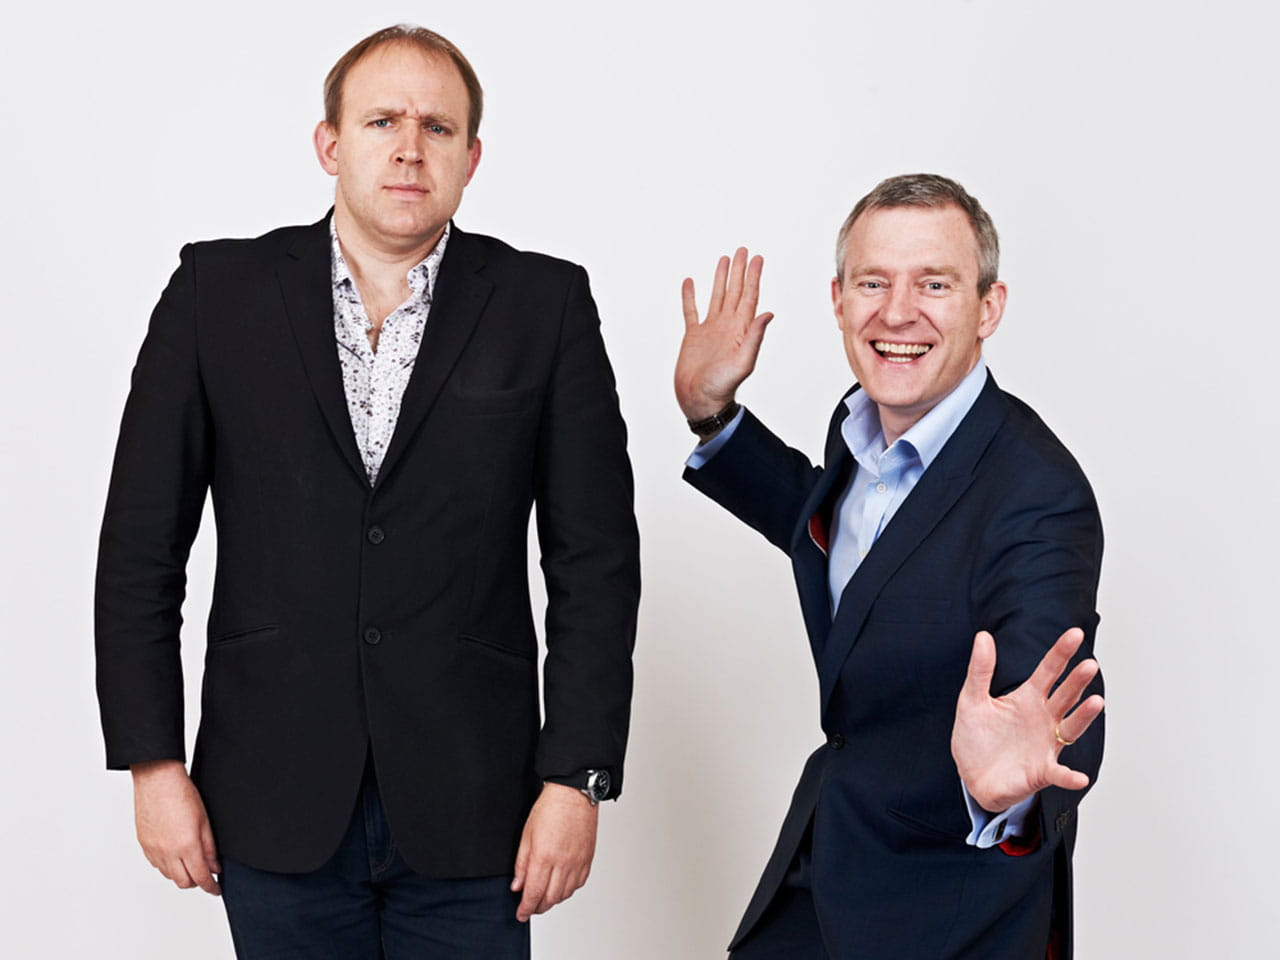 Brothers Tim Vine and Jeremy Vine